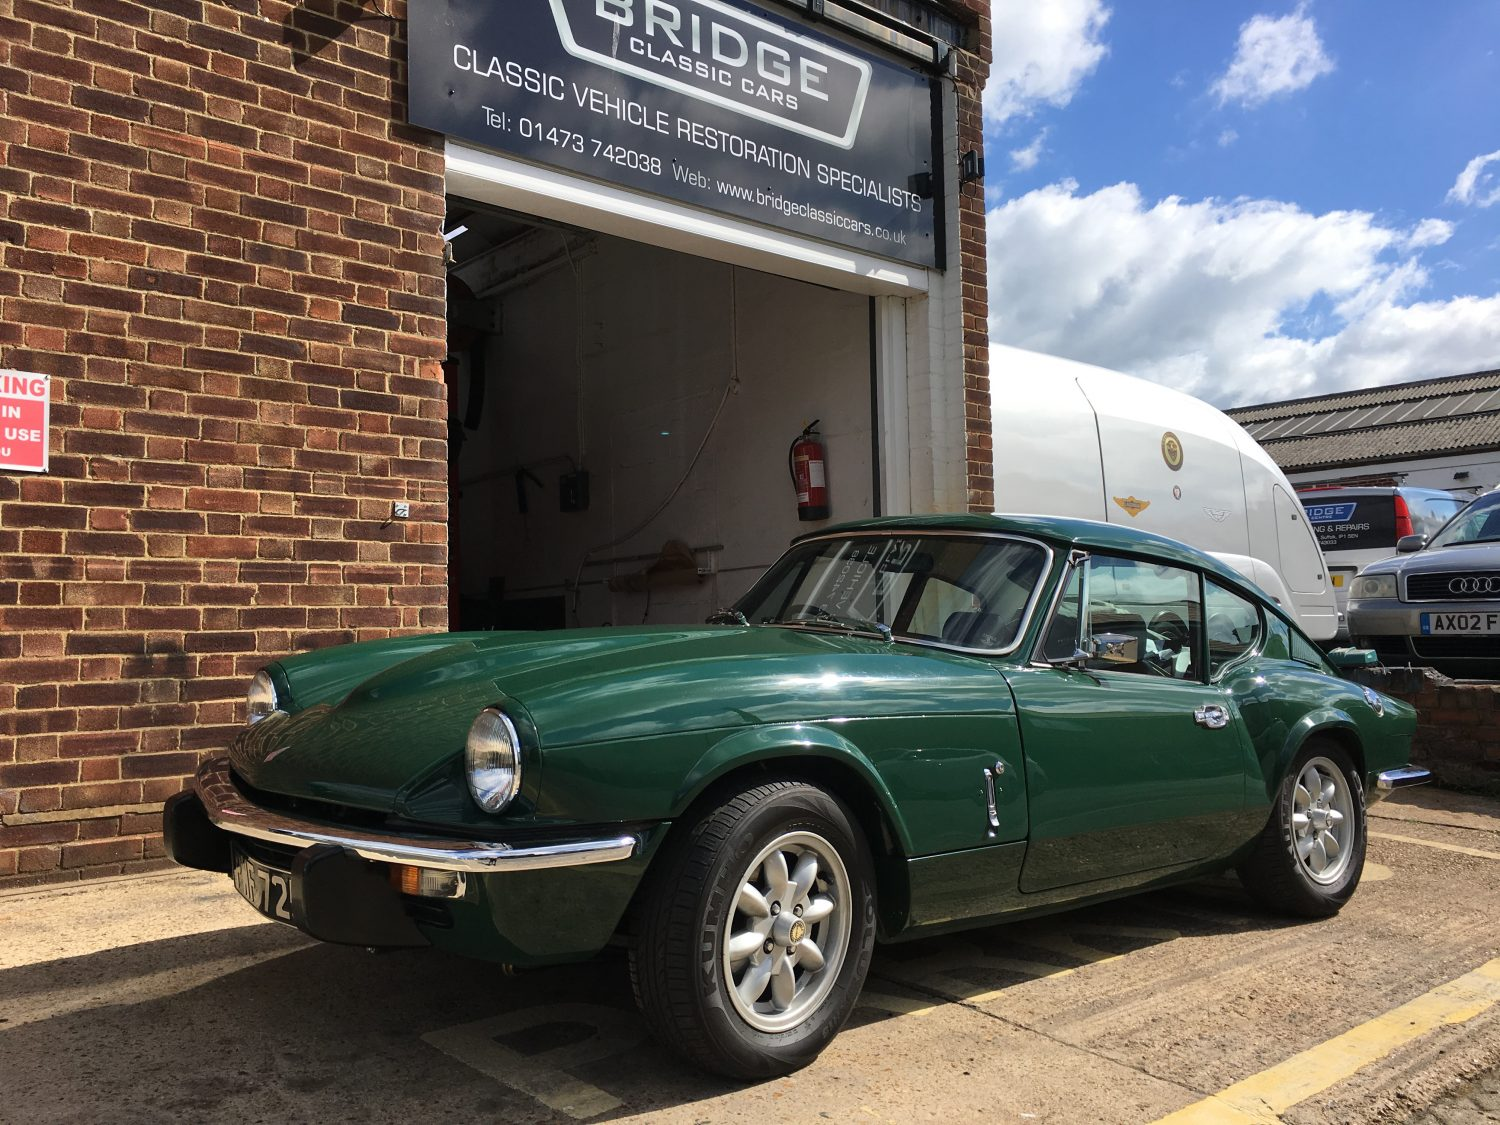 Phase 1 of our Triumph GT6 project complete - Bridge Classic Cars